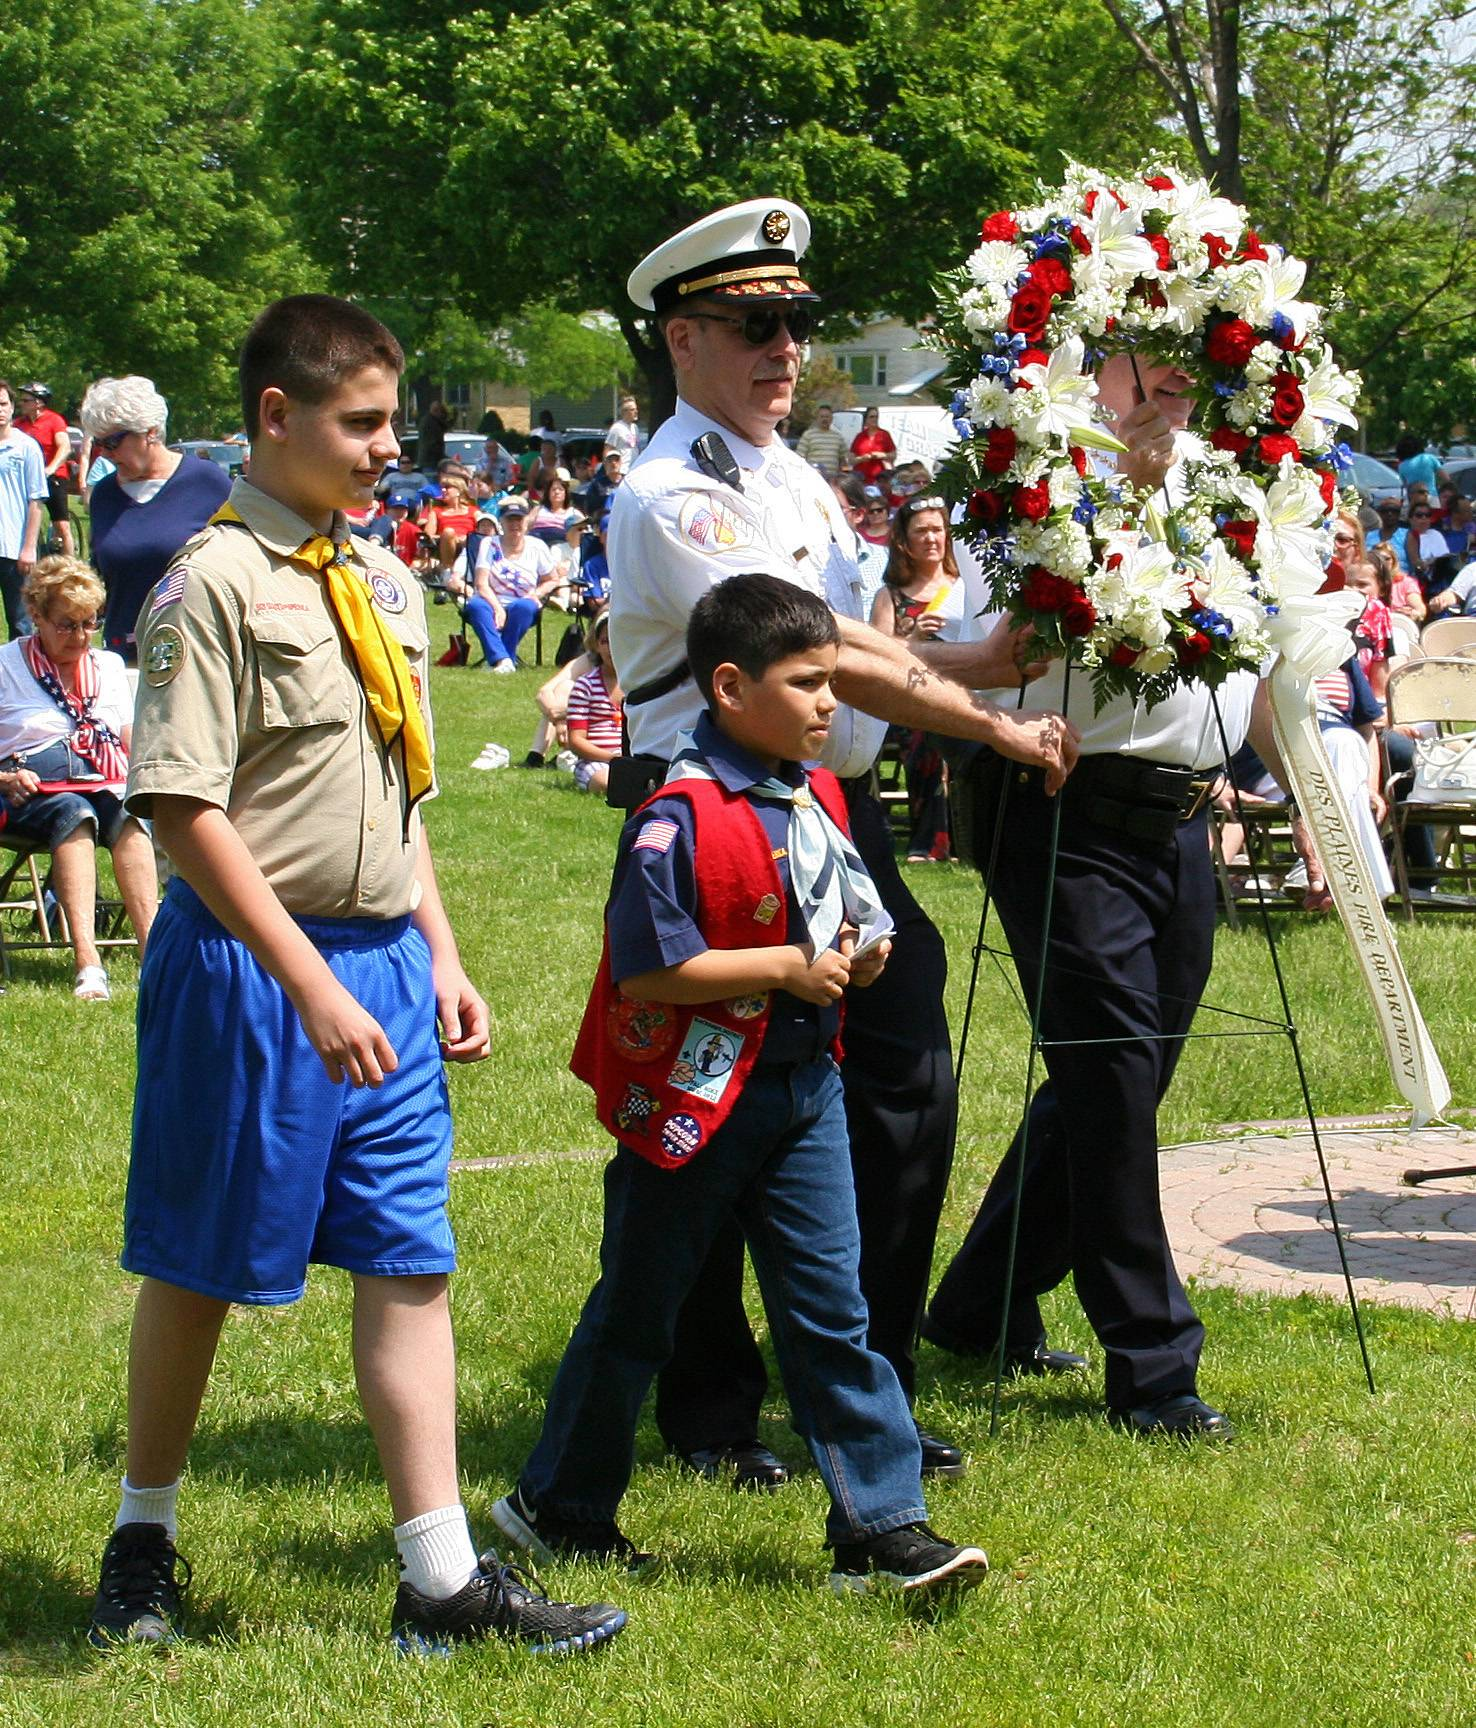 Fire Chief Alan Wax and Police Chief William Kushner, accompanied by a Boy Scout and Cub Scout, during the Presentation of the Wreaths at the Memorial Day Ceremony on May 26 at Lake Park.